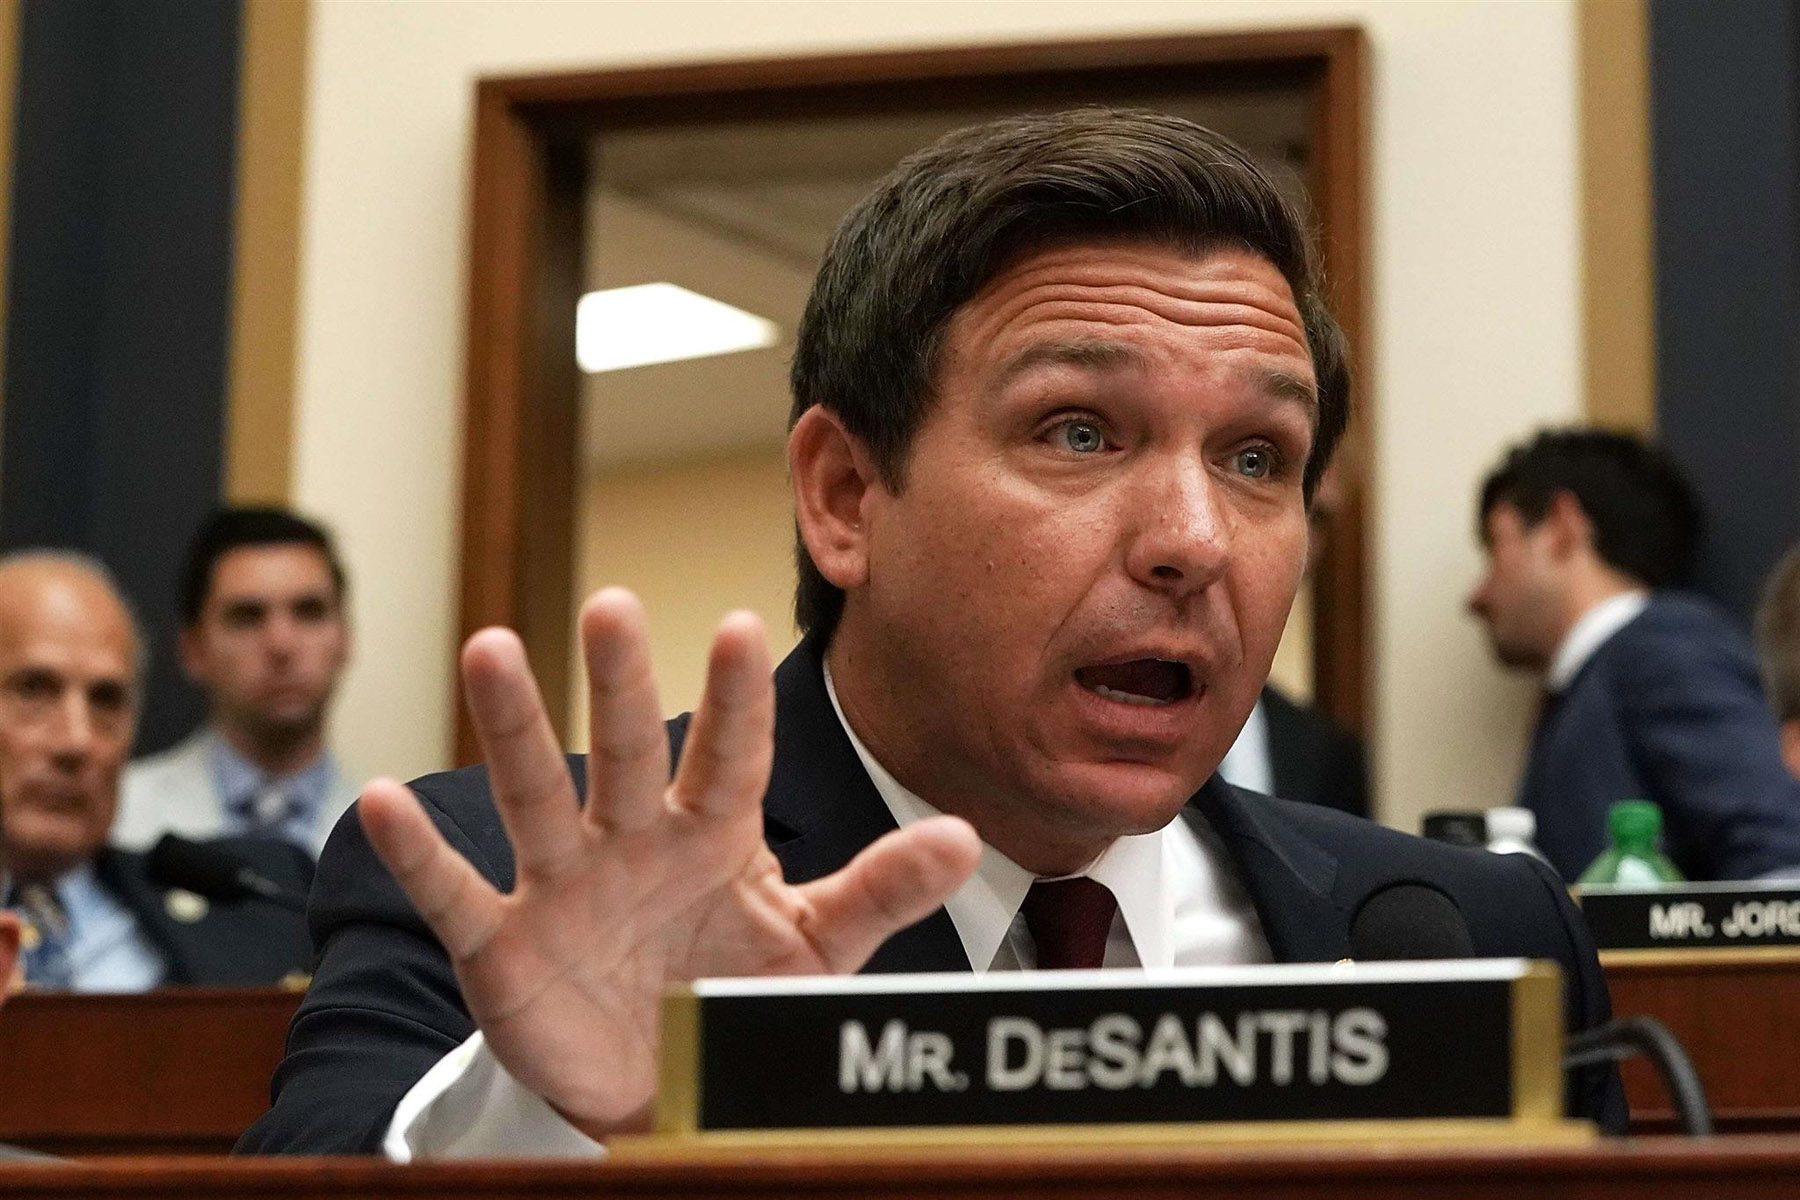 US Representative Ron DeSantis, a Republican from Florida, speaks during a hearing before the House Judiciary Committee in Washington. (AFP)